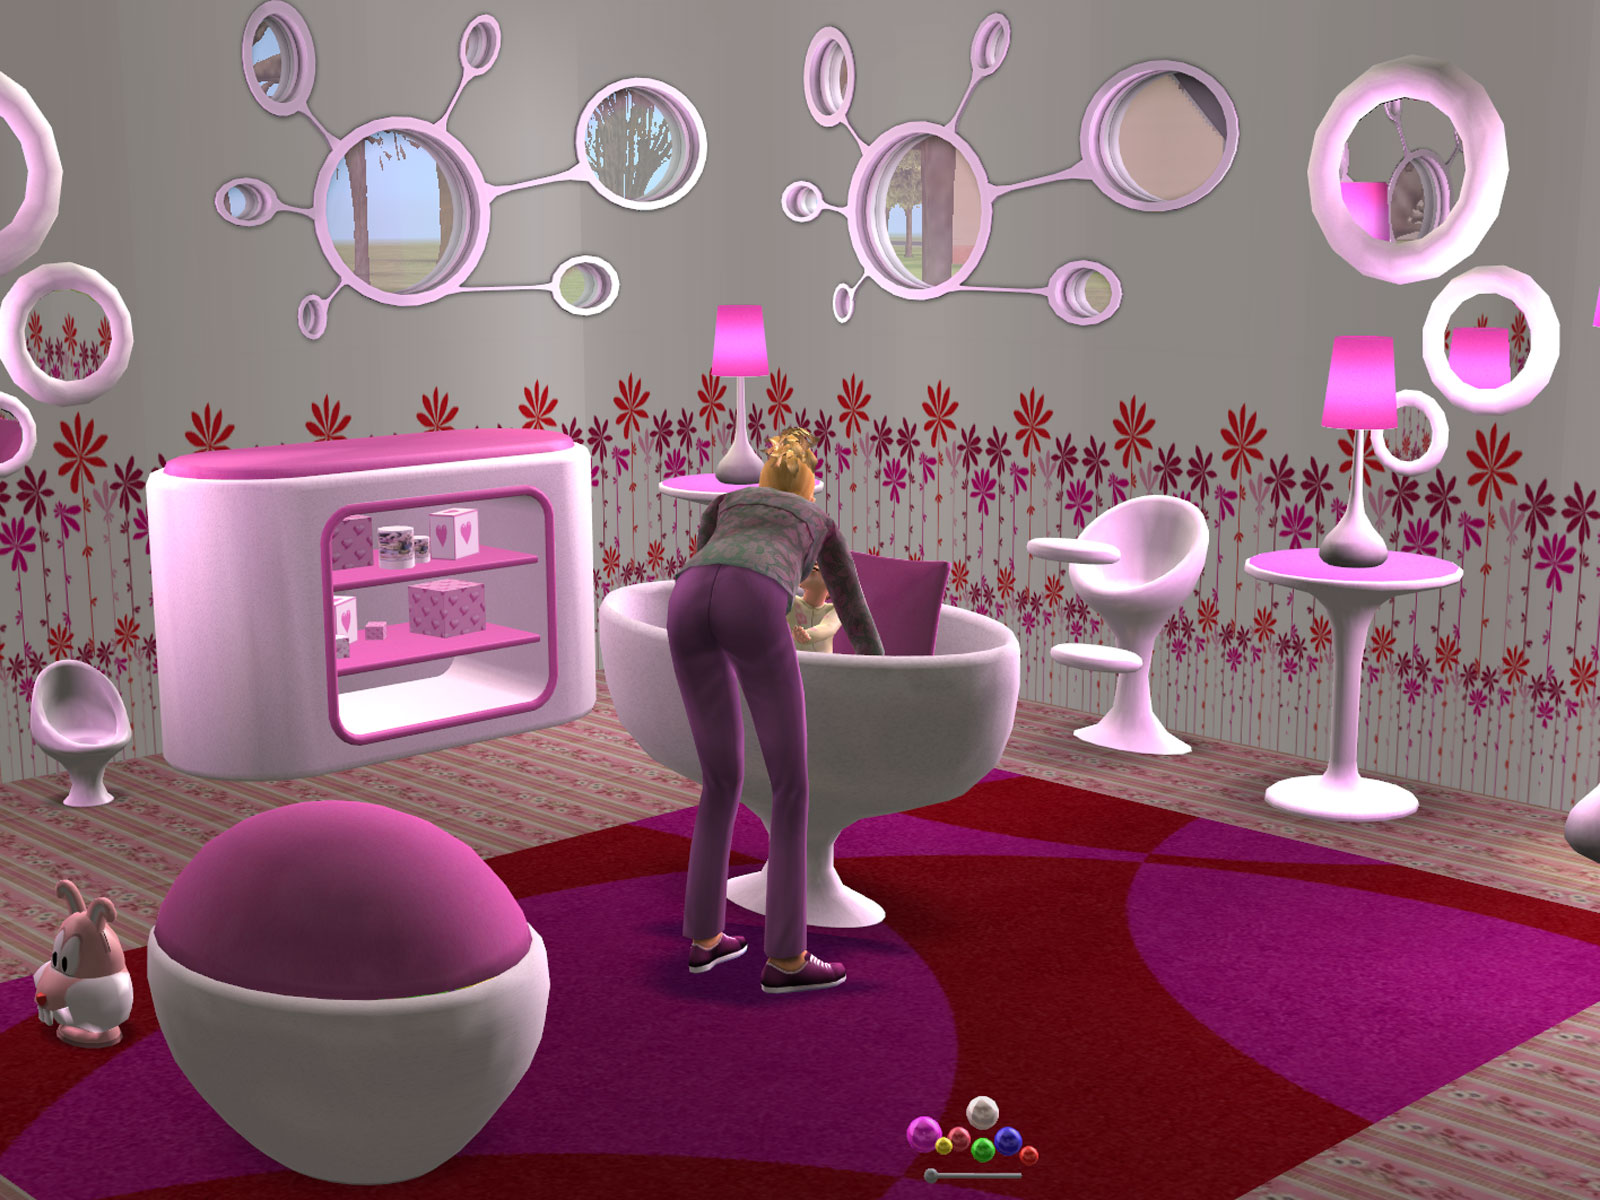 http://www.parsimonious.org/furniture2/files/k8-Yeah_Baby_Nursery.jpg